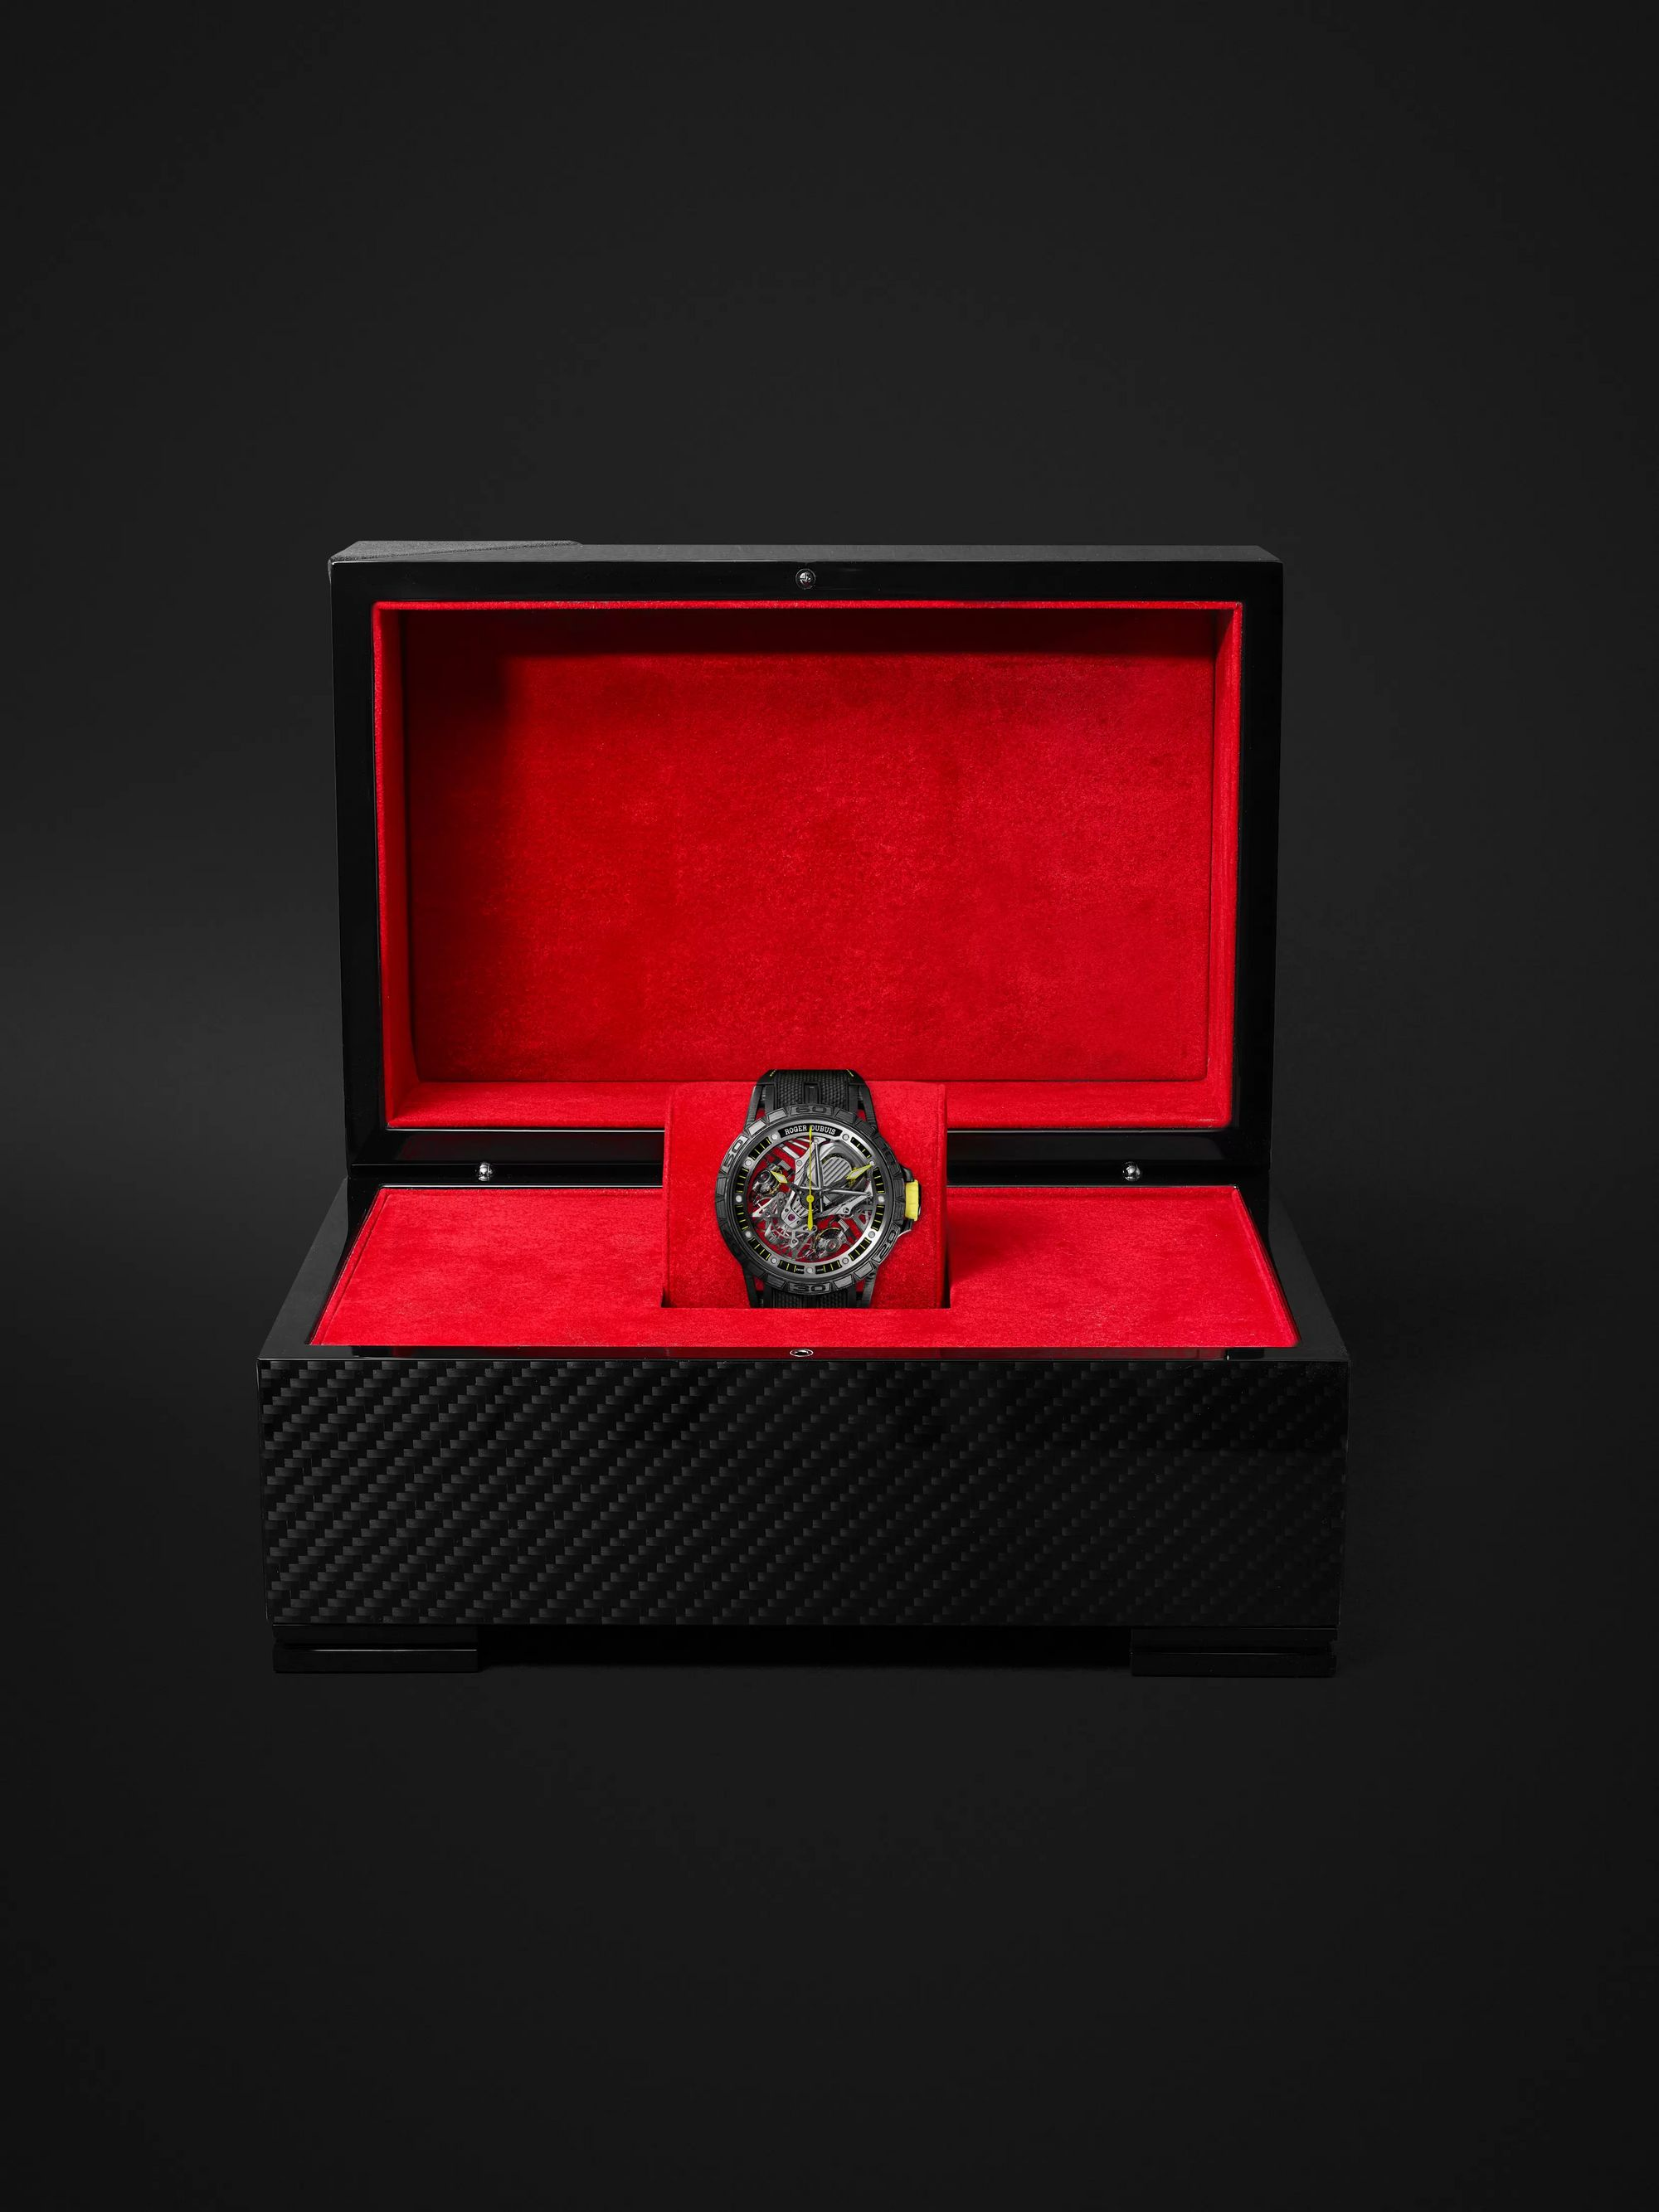 Roger Dubuis Excalibur Aventador S Limited Edition Skeleton 45mm Multilayer Carbon and Titanium Watch, Ref. No. 1146211